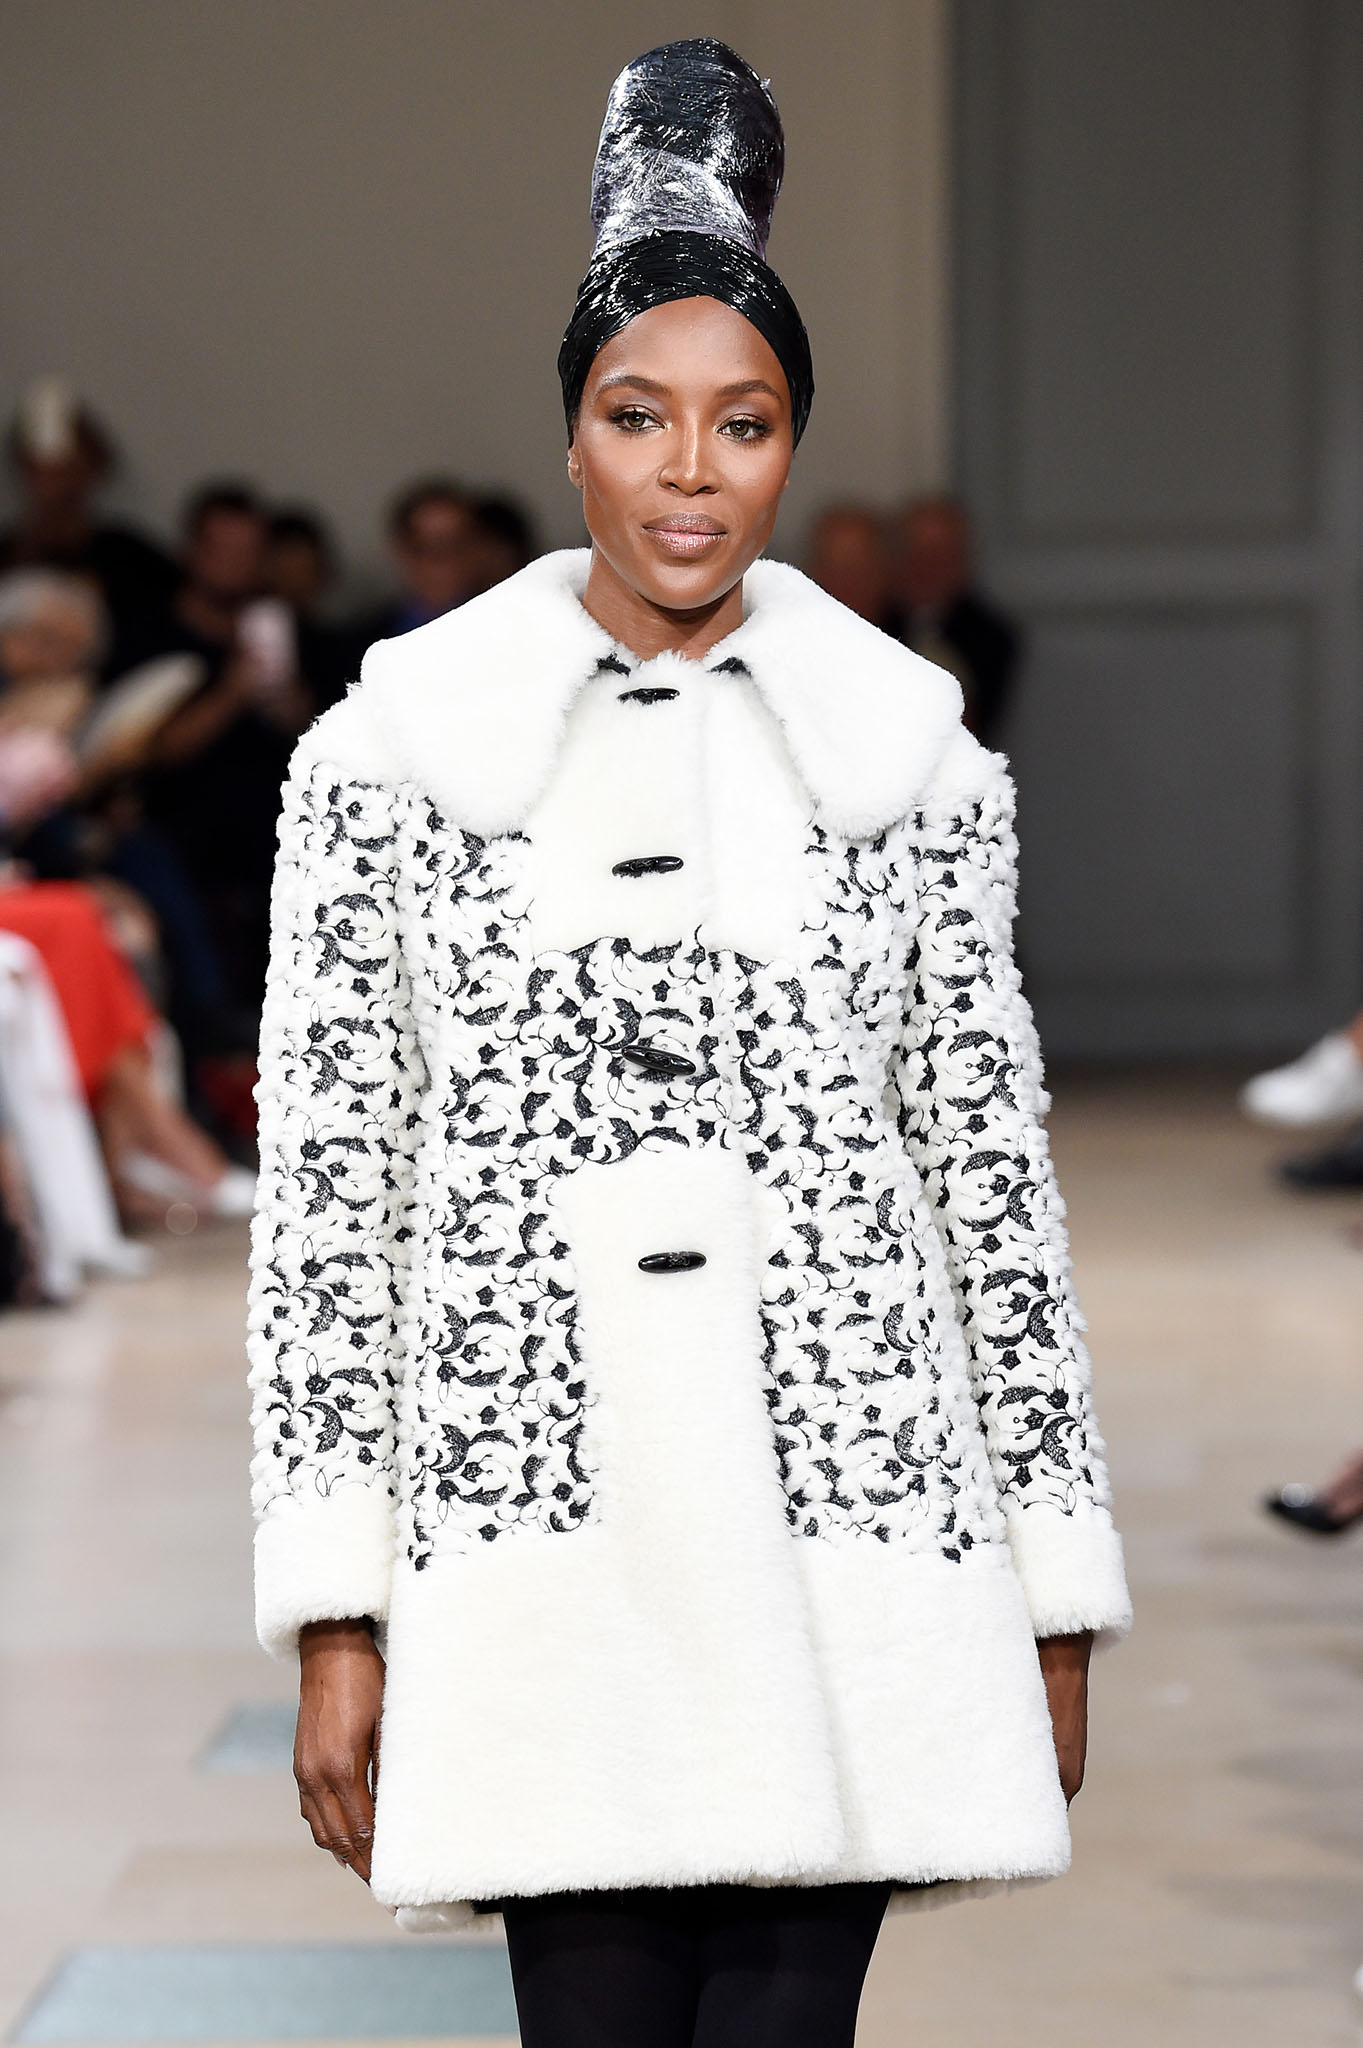 Naomi Campbell on the catwalkAzzedine Alaia show, Runway, Fall Winter 2017, Haute Couture Fashion Week, Paris, France - 05 Jul 2017